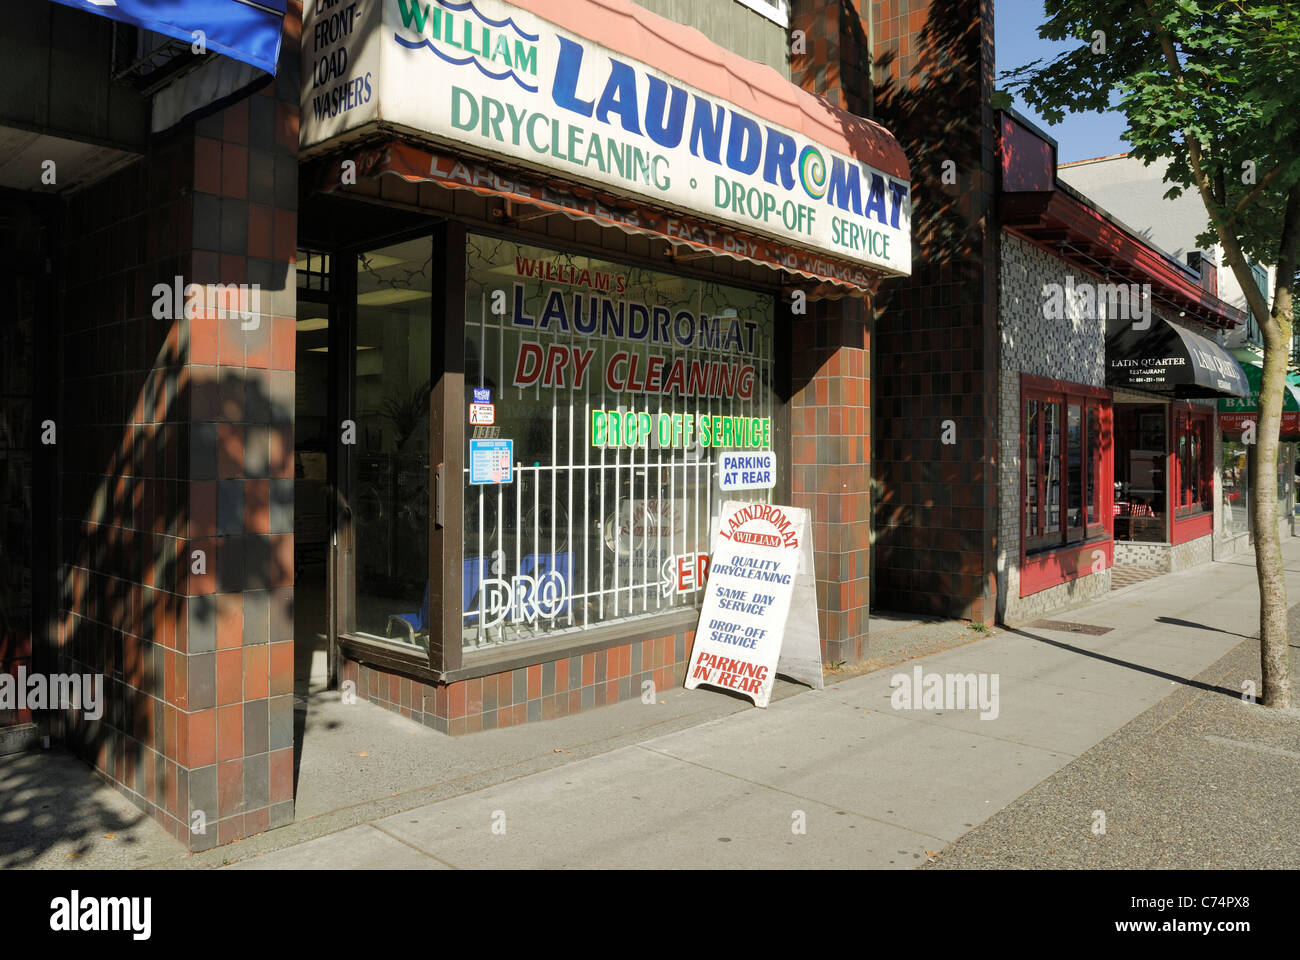 Public laundromat located on Commercial Drive, in the City of Vancouver - Stock Image